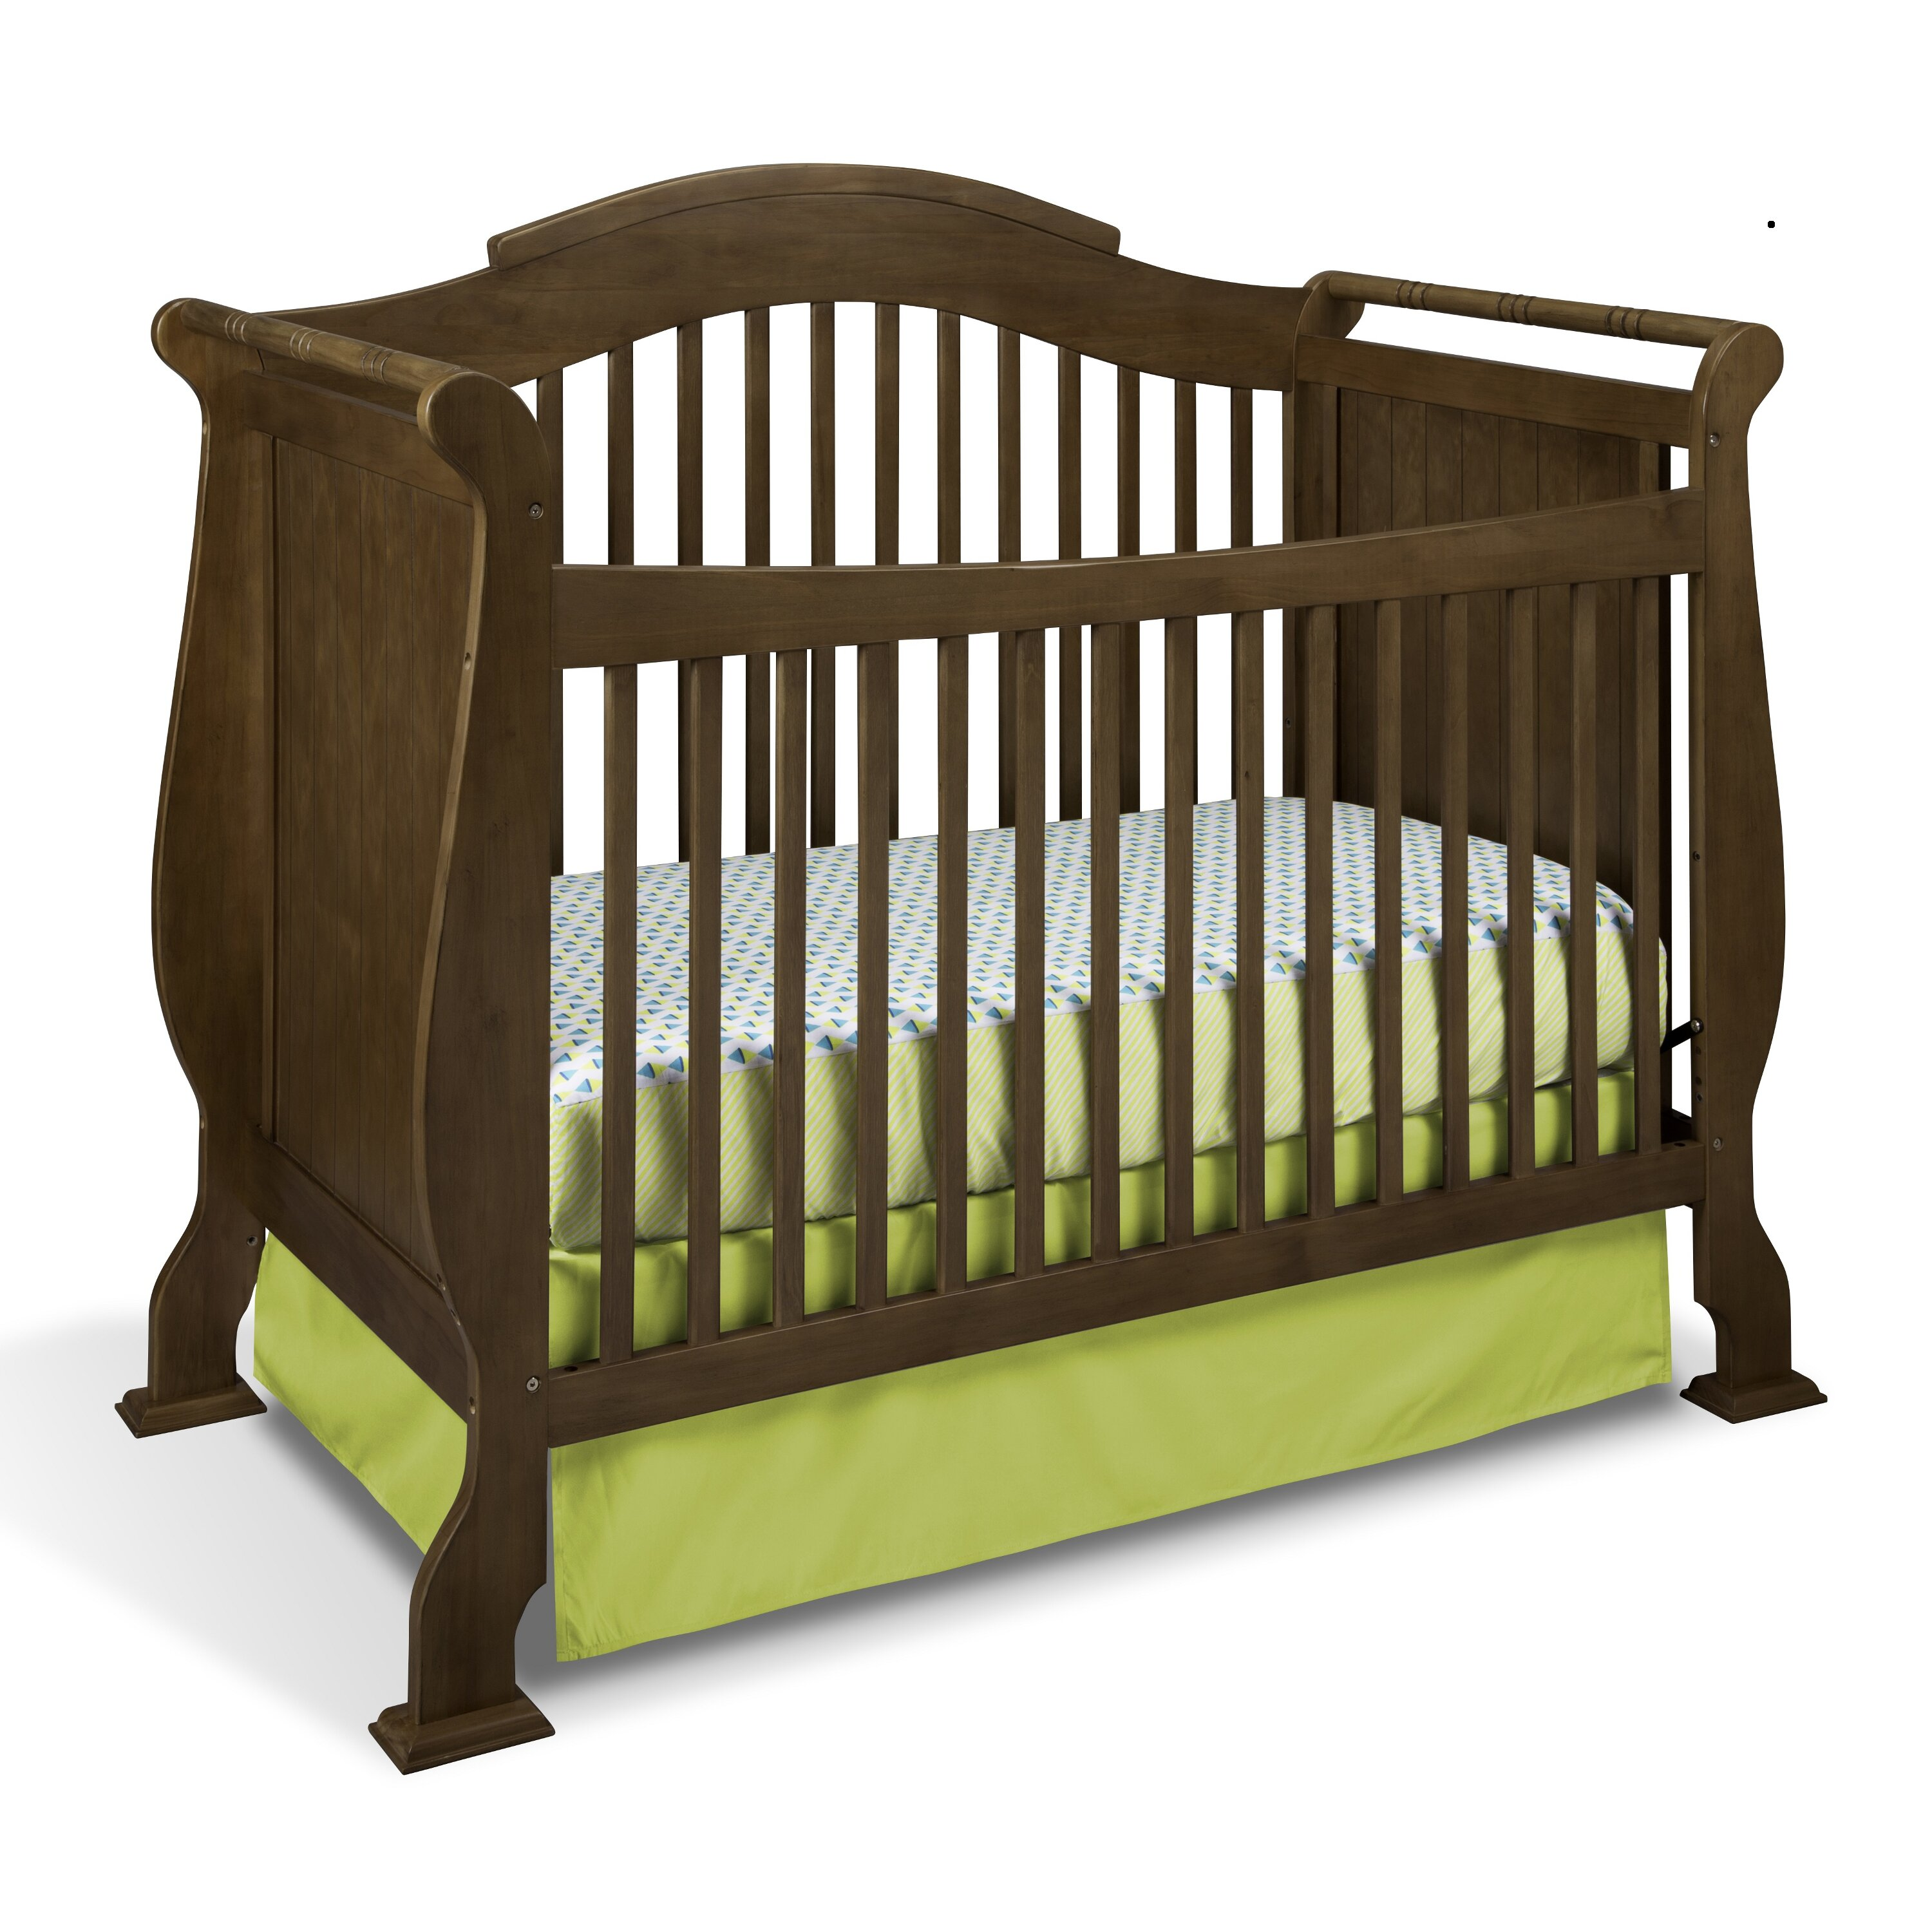 Used crib for sale edmonton - Used Crib For Sale Edmonton Storkcraft Valentia 4 In 1 Convertible Crib